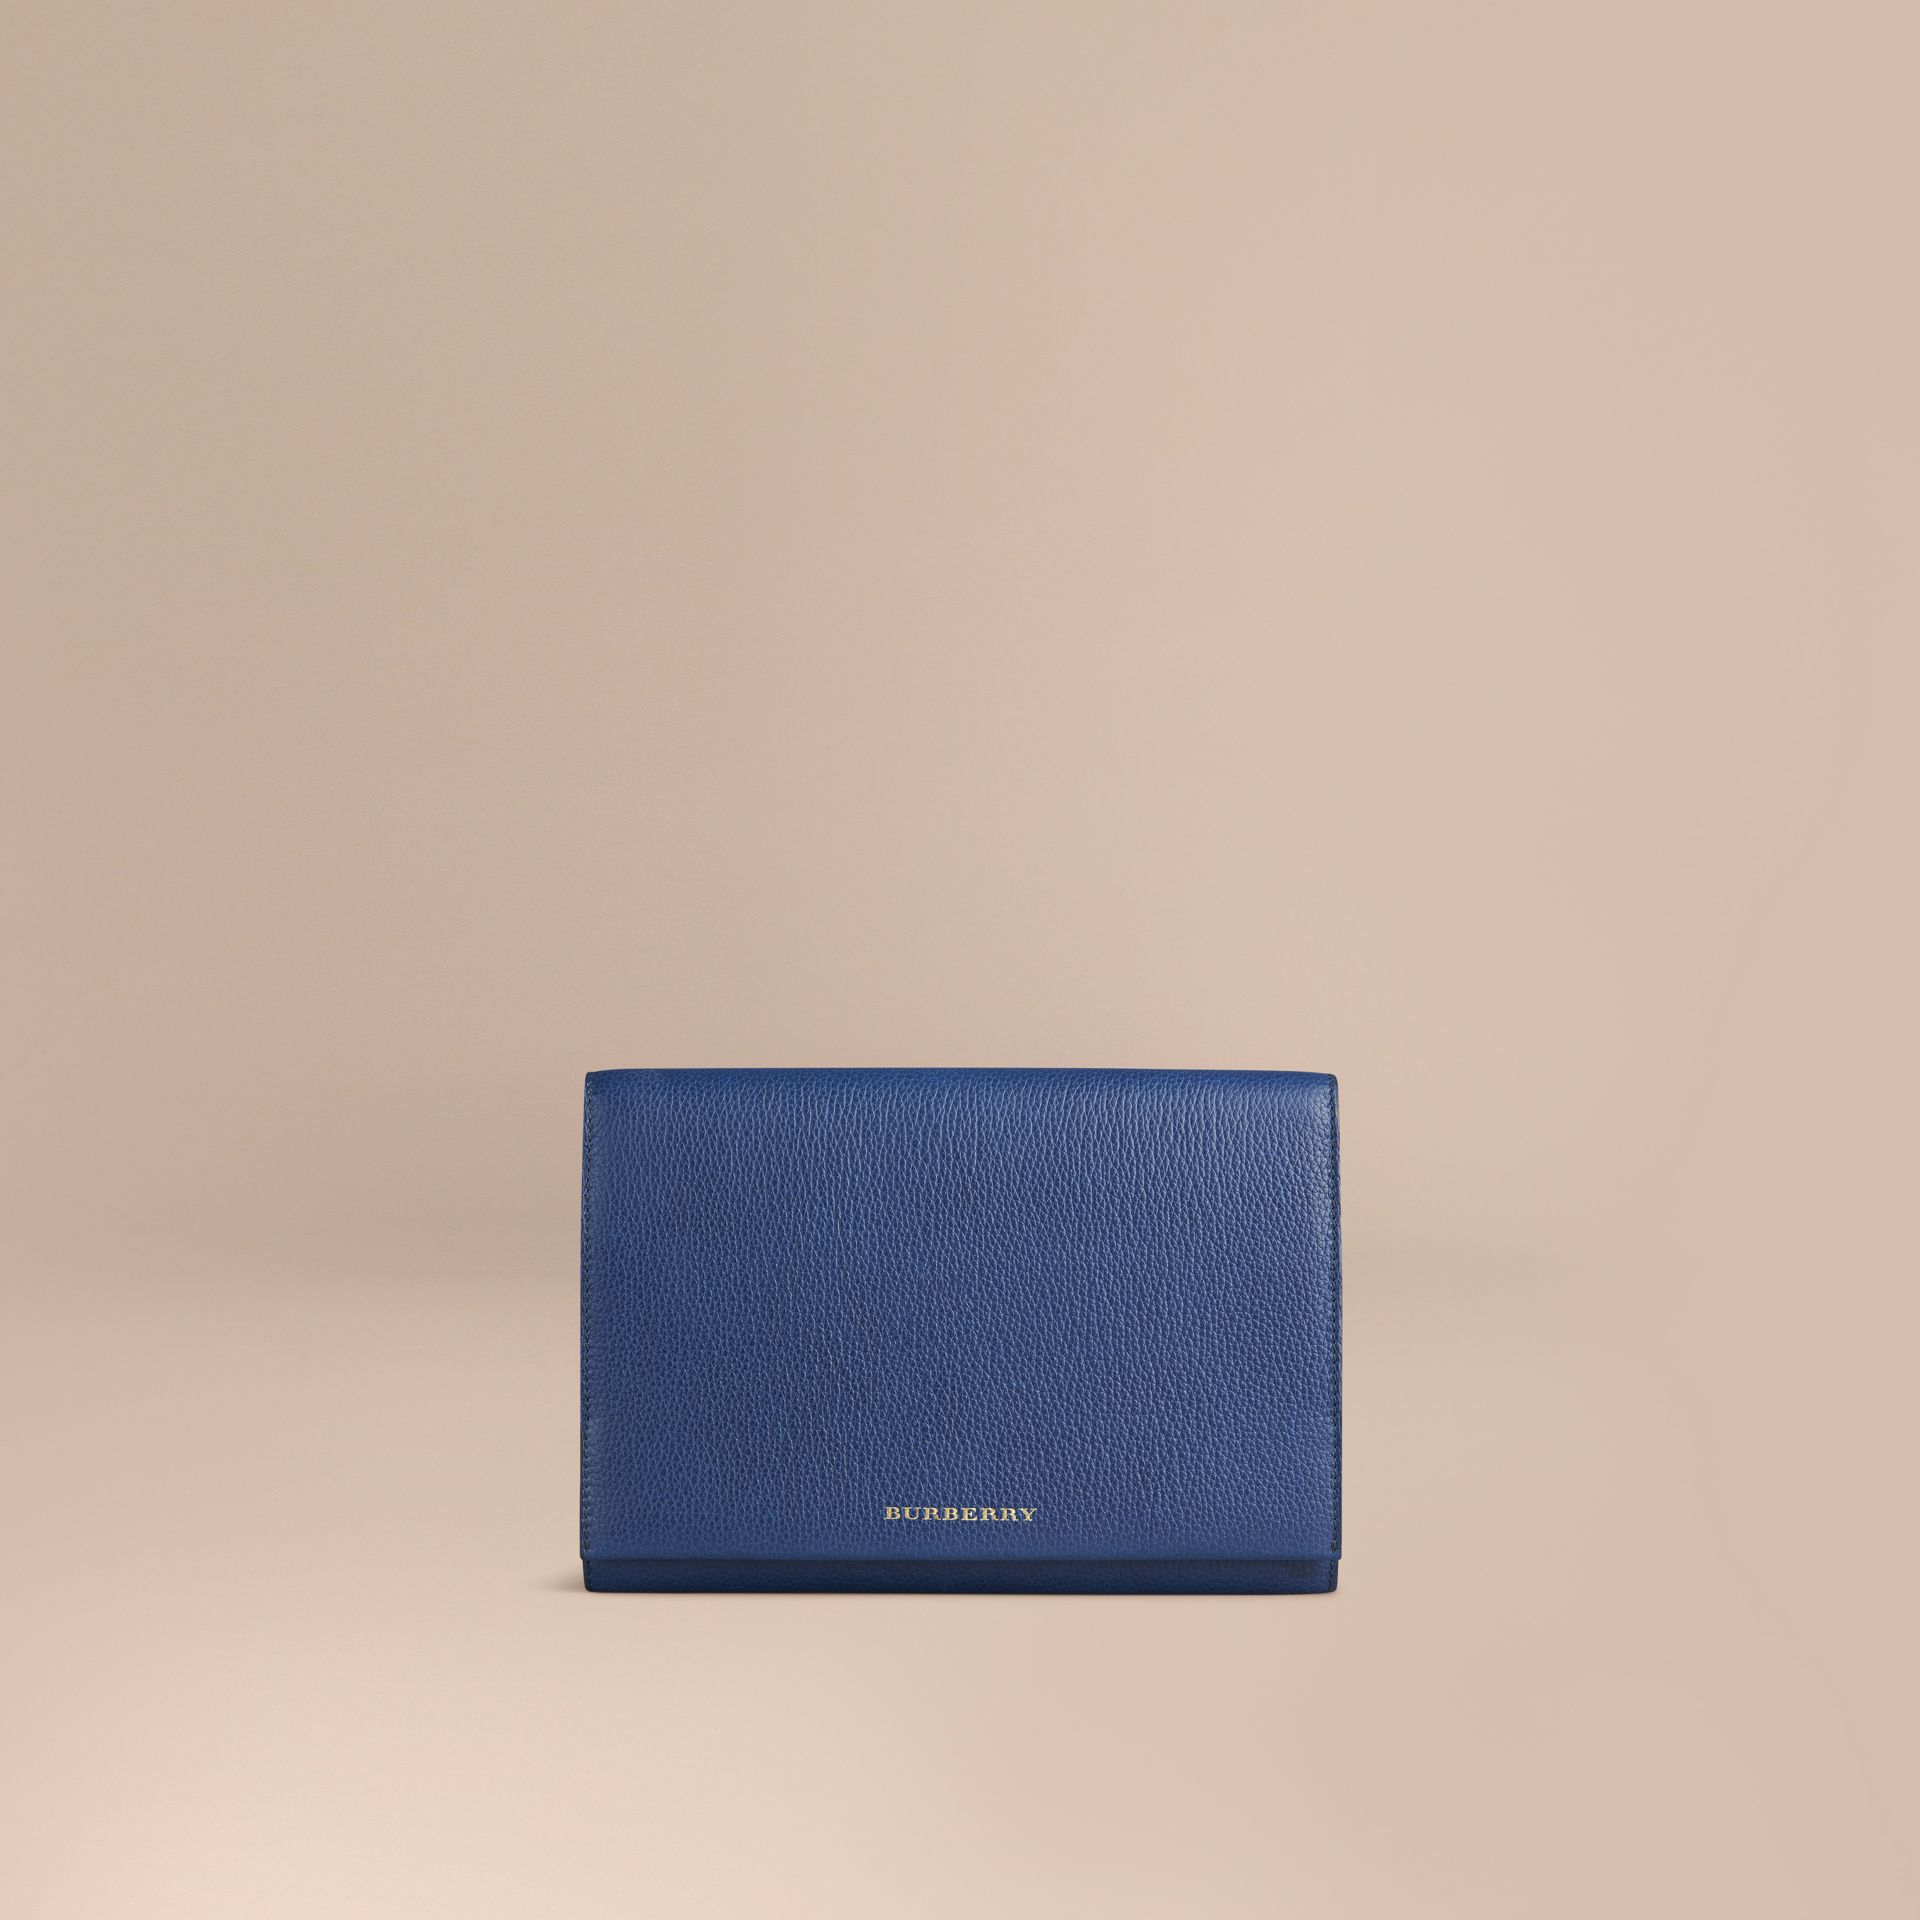 Grainy Leather Travel Wallet in Bright Navy - Men | Burberry Canada - gallery image 1